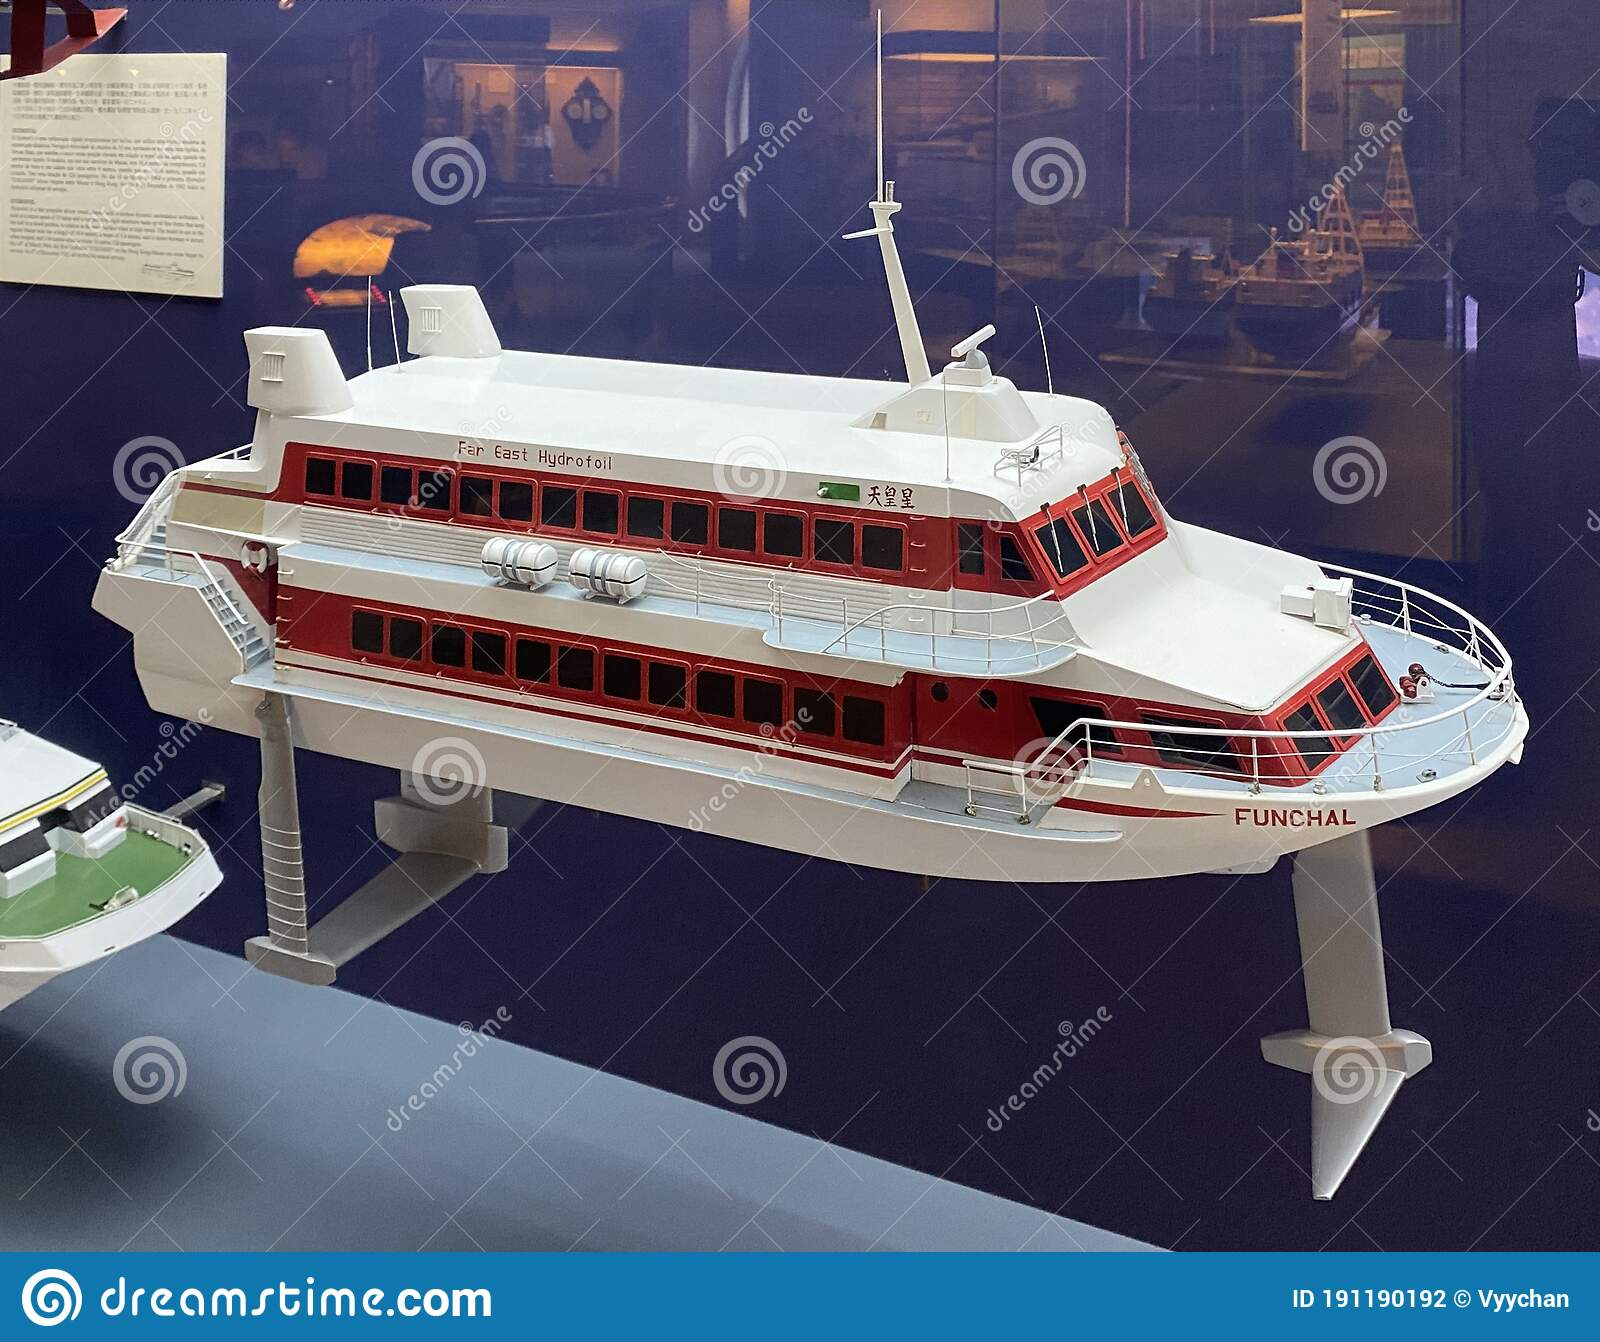 681 Hydrofoil Ship Photos Free Royalty Free Stock Photos From Dreamstime